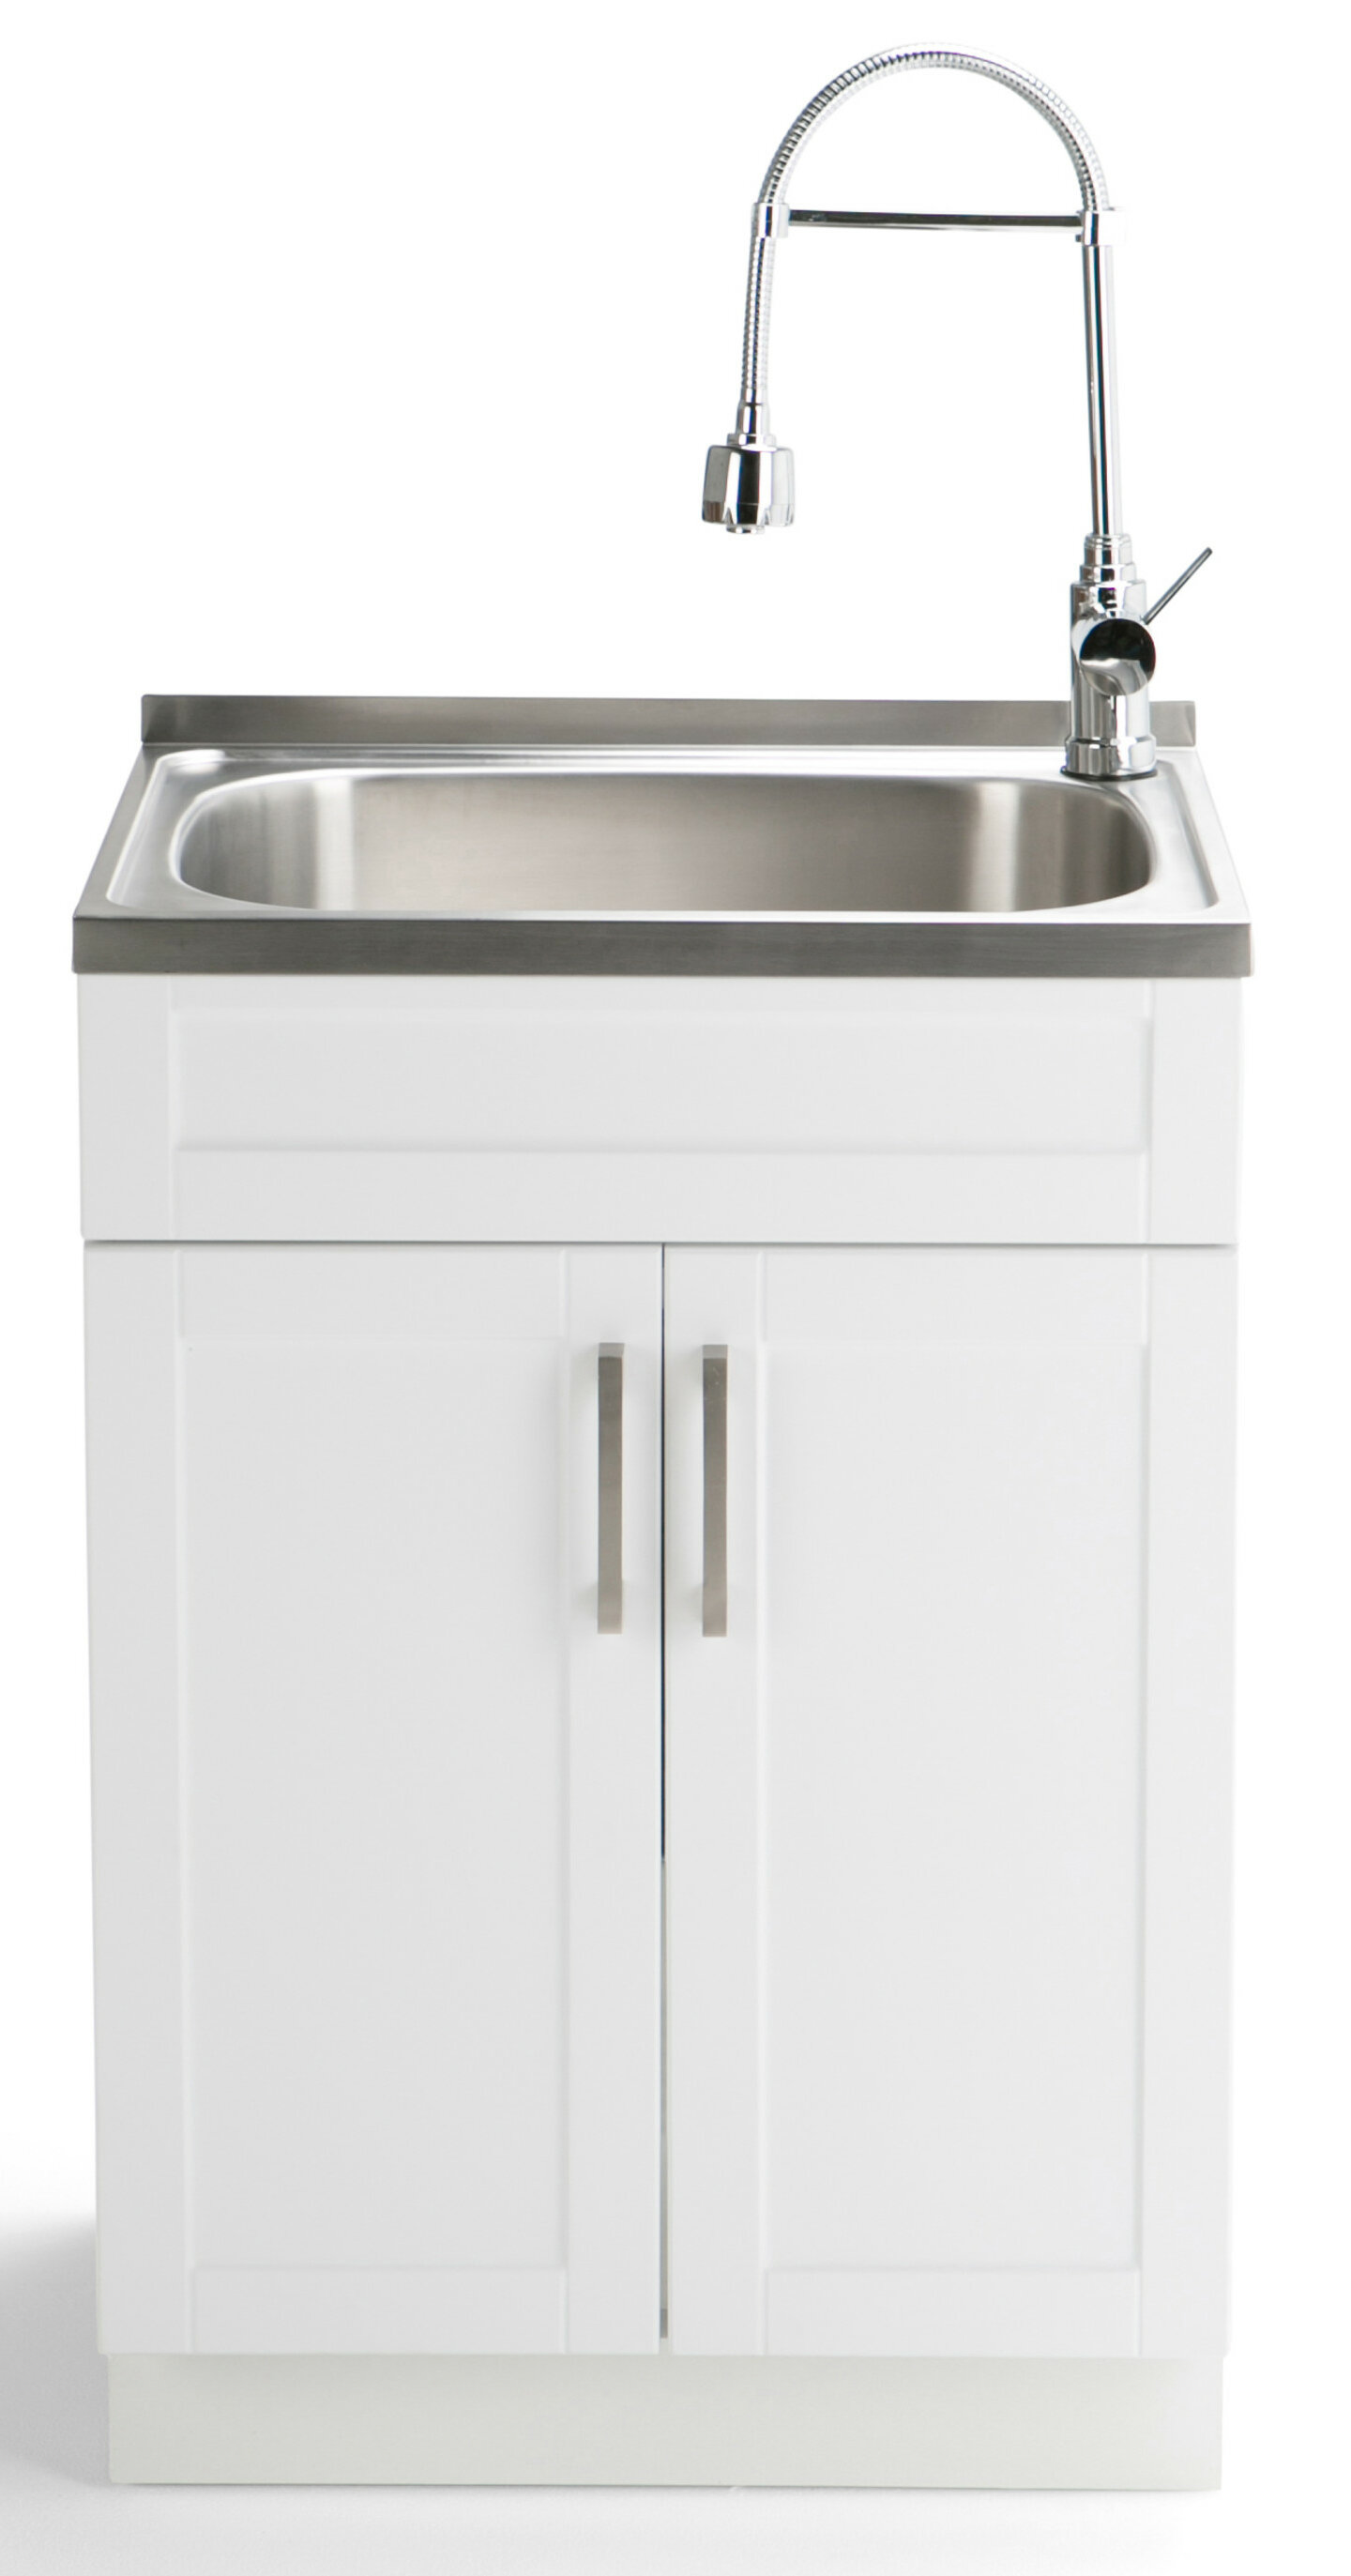 Simpli Home Hennessy 23 6 X 19 7 Freestanding Laundry Sink With